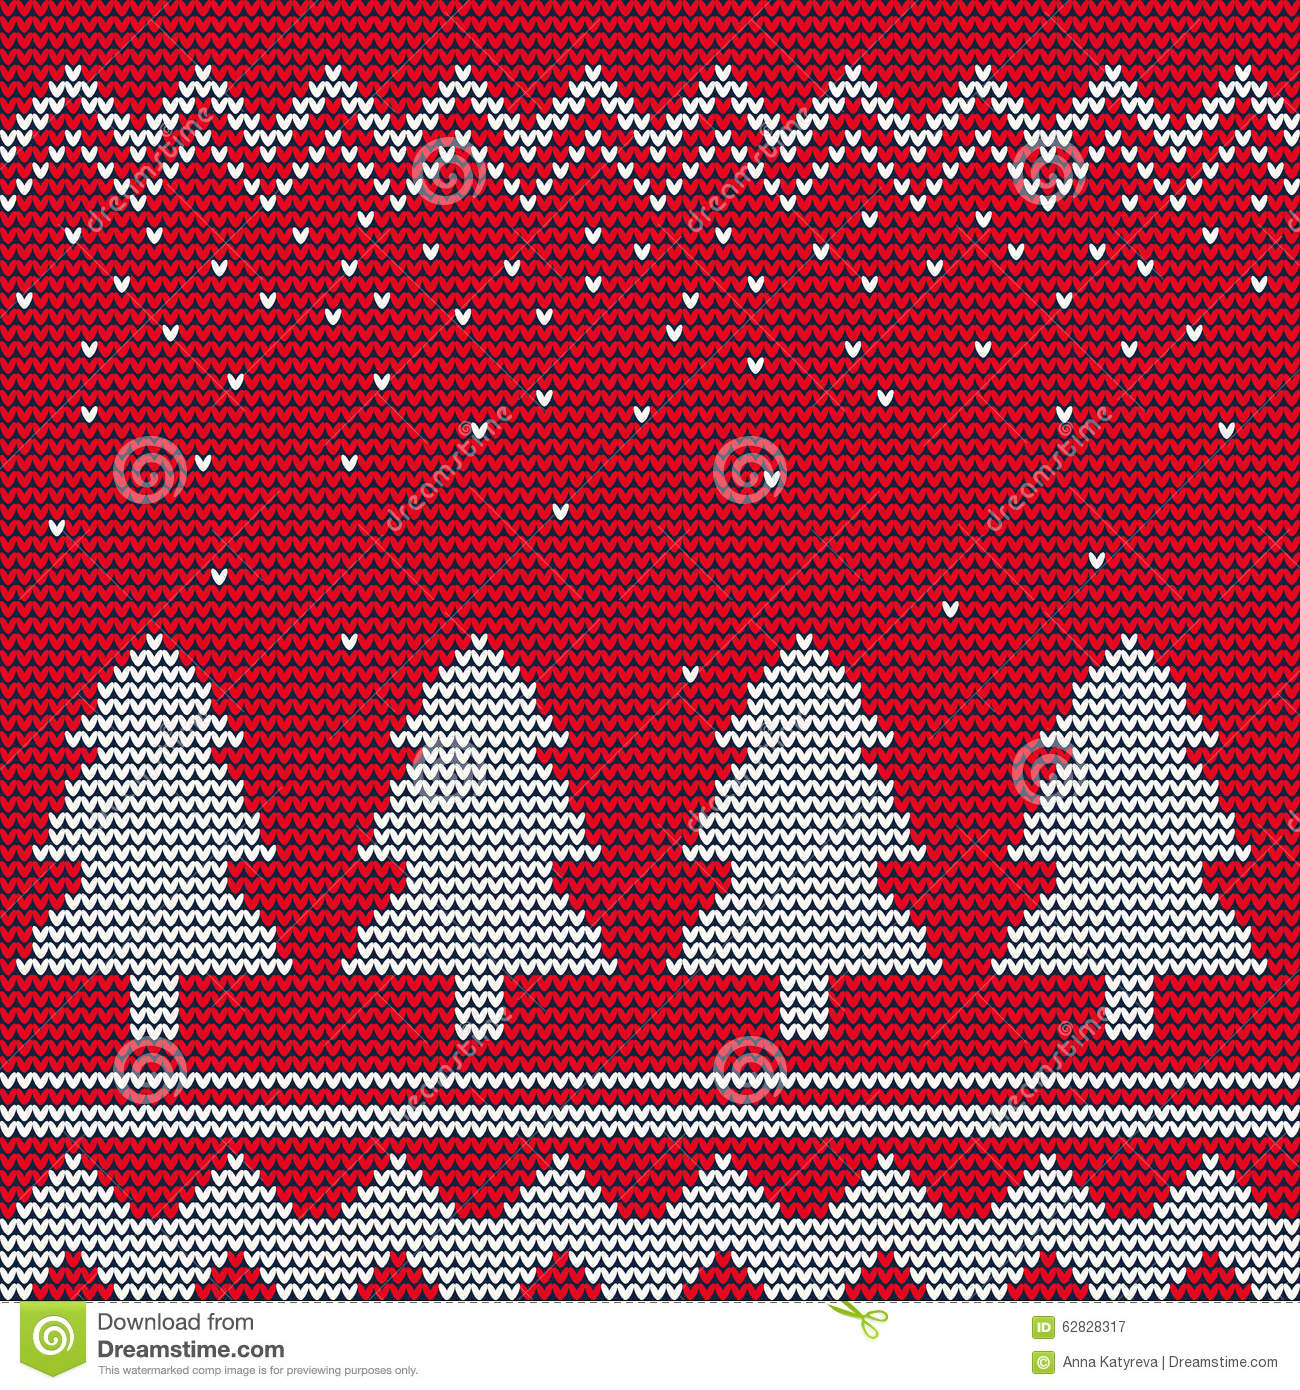 Ugly Christmas Sweaters Patterns.Christmas Ugly Sweater 1 Stock Vector Illustration Of